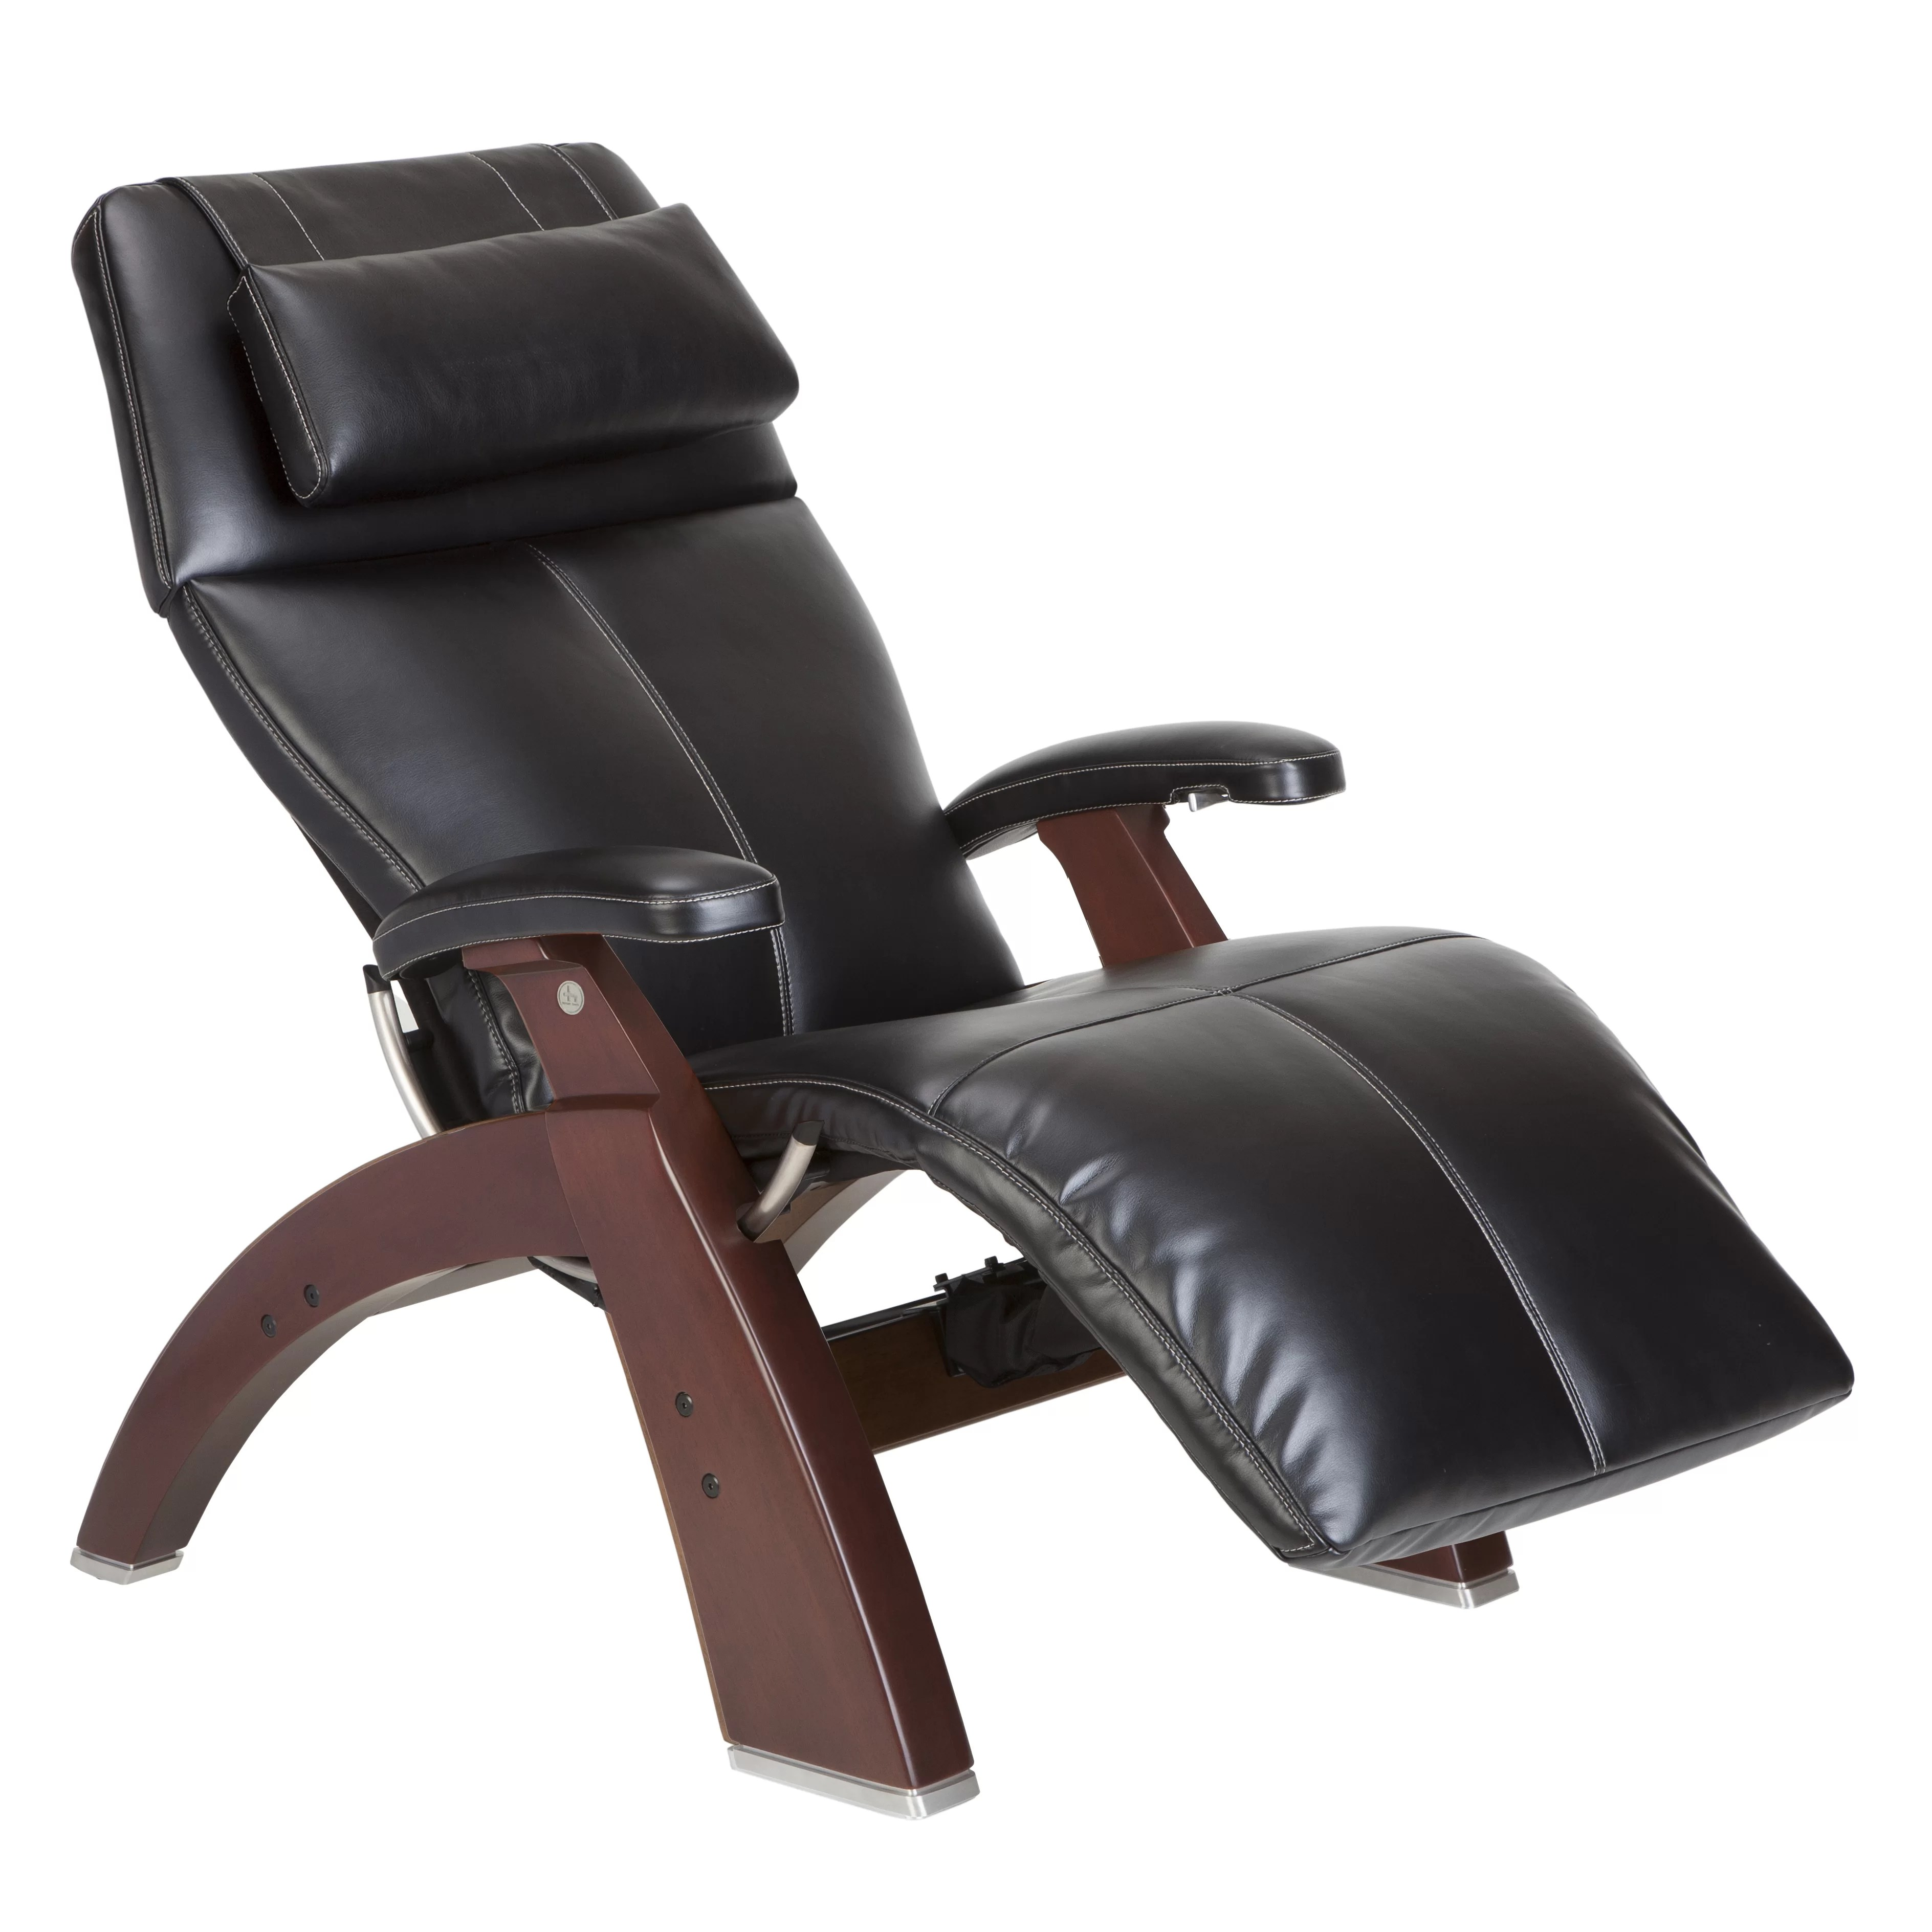 The Perfect Chair Human Touch Perfect Chair Quotpc 500 Quot Silhouette Leather Zero